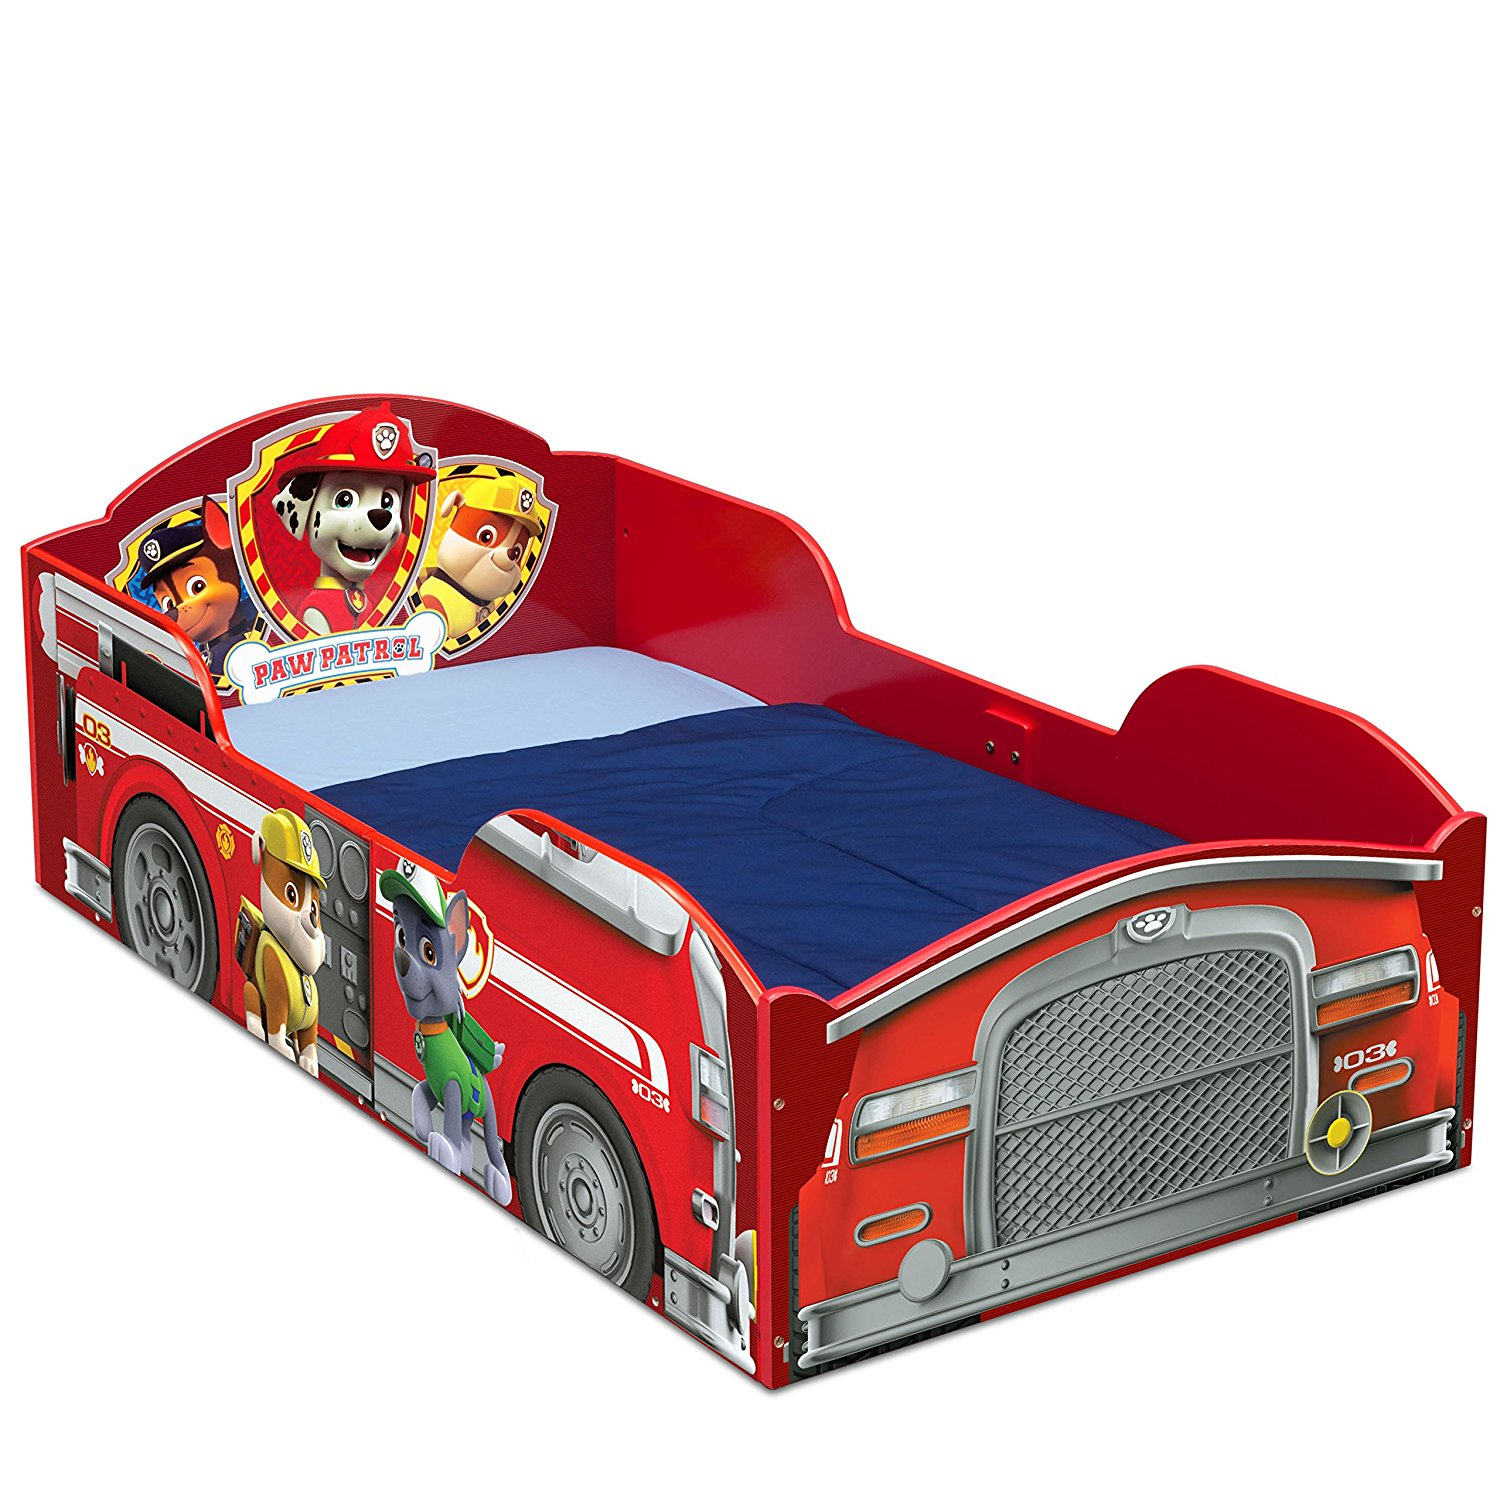 Delta Wood Bed, Nick Jr. Paw Patrol